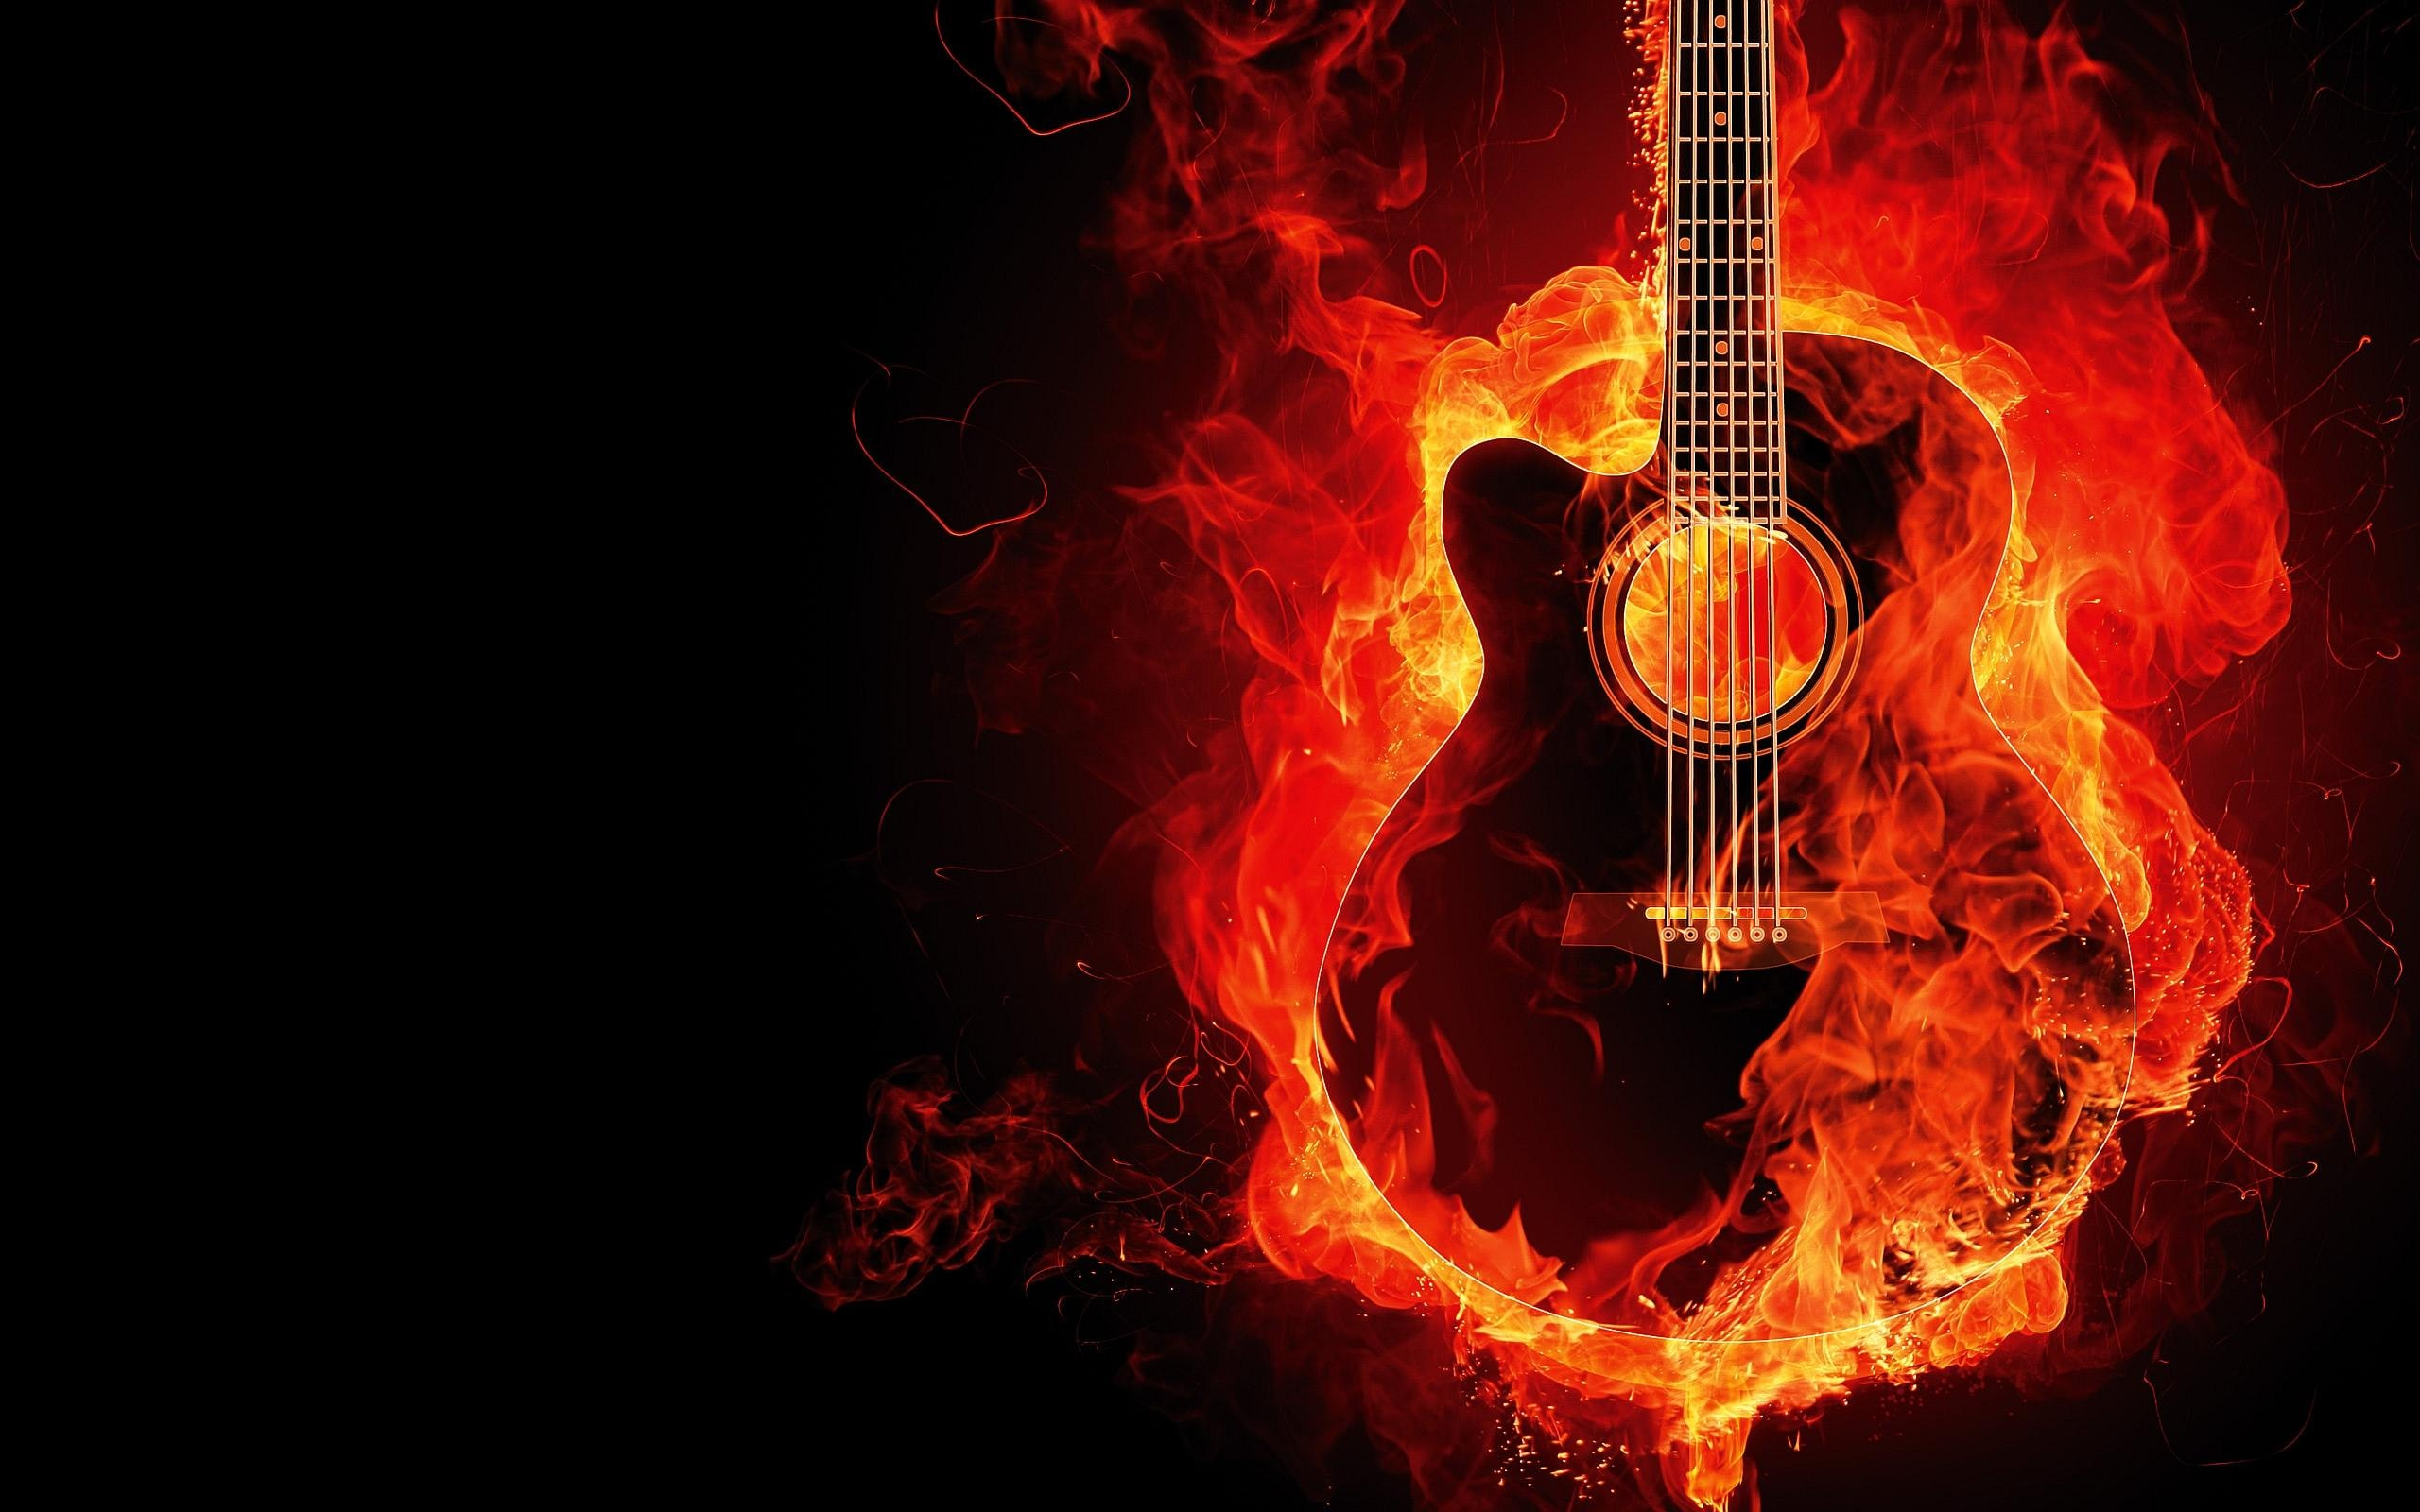 A cutaway acoustic guitar in flames against a black background